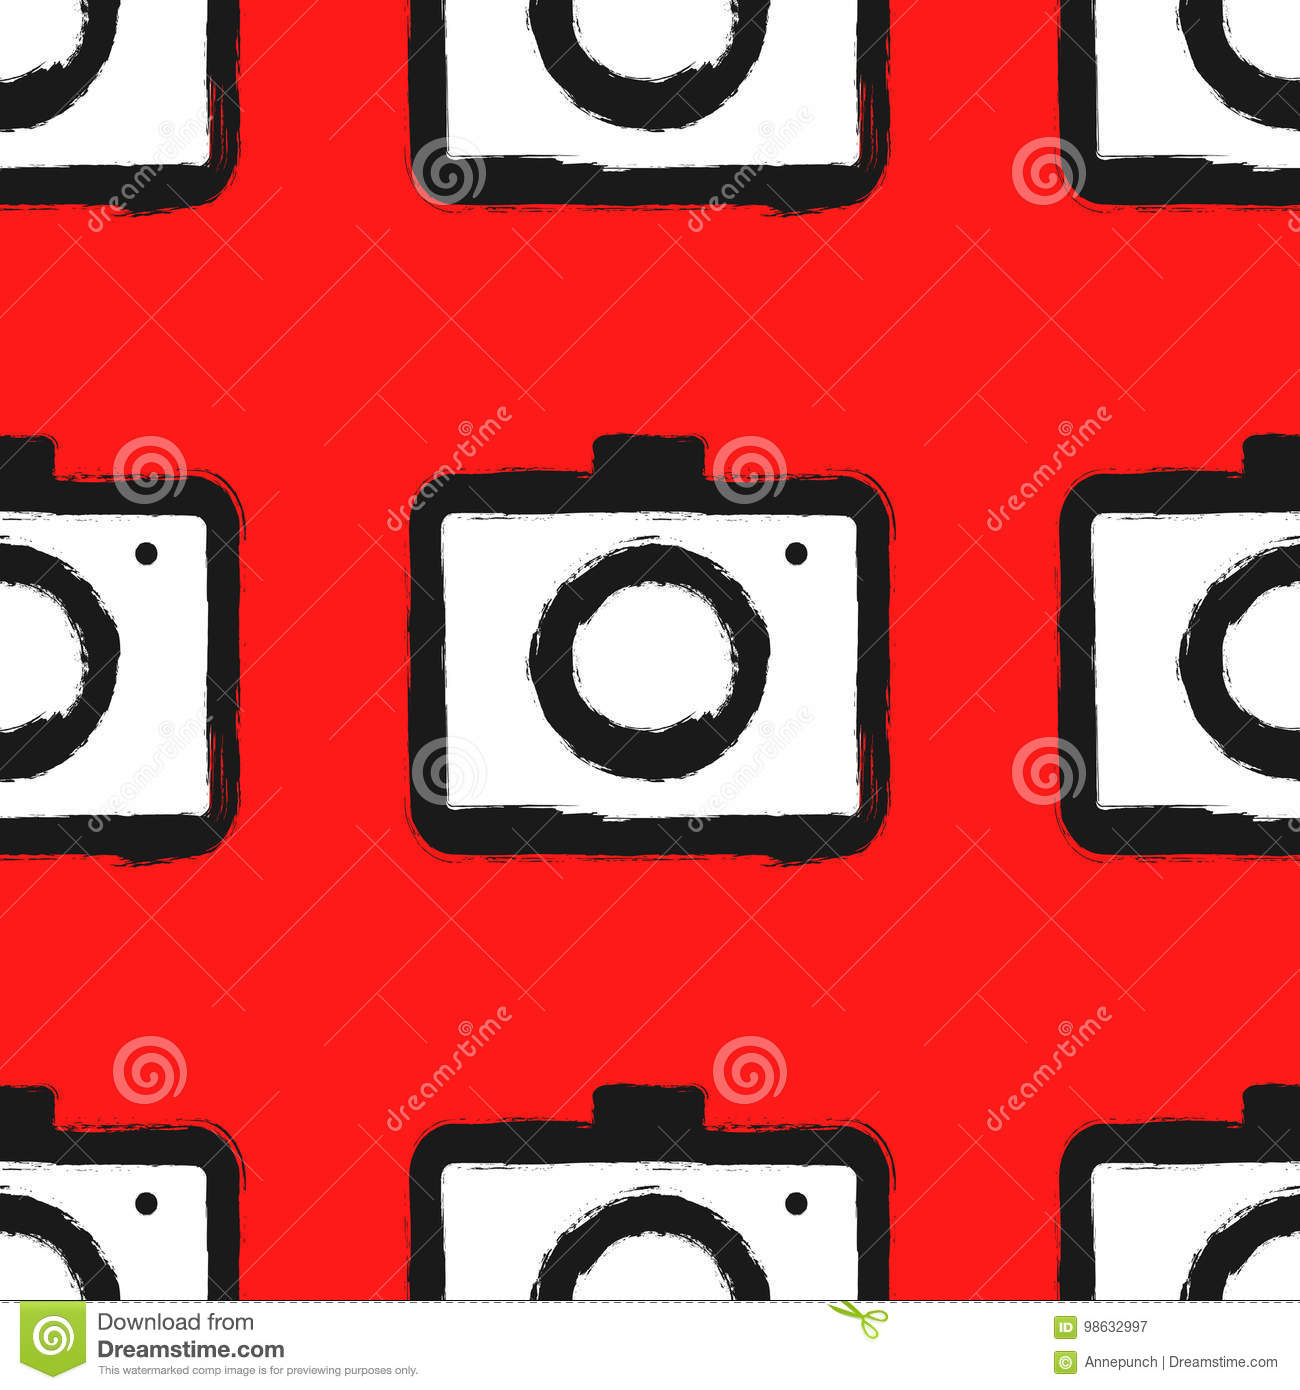 Seamless pattern with cameras. Painted by hand with rough brush.